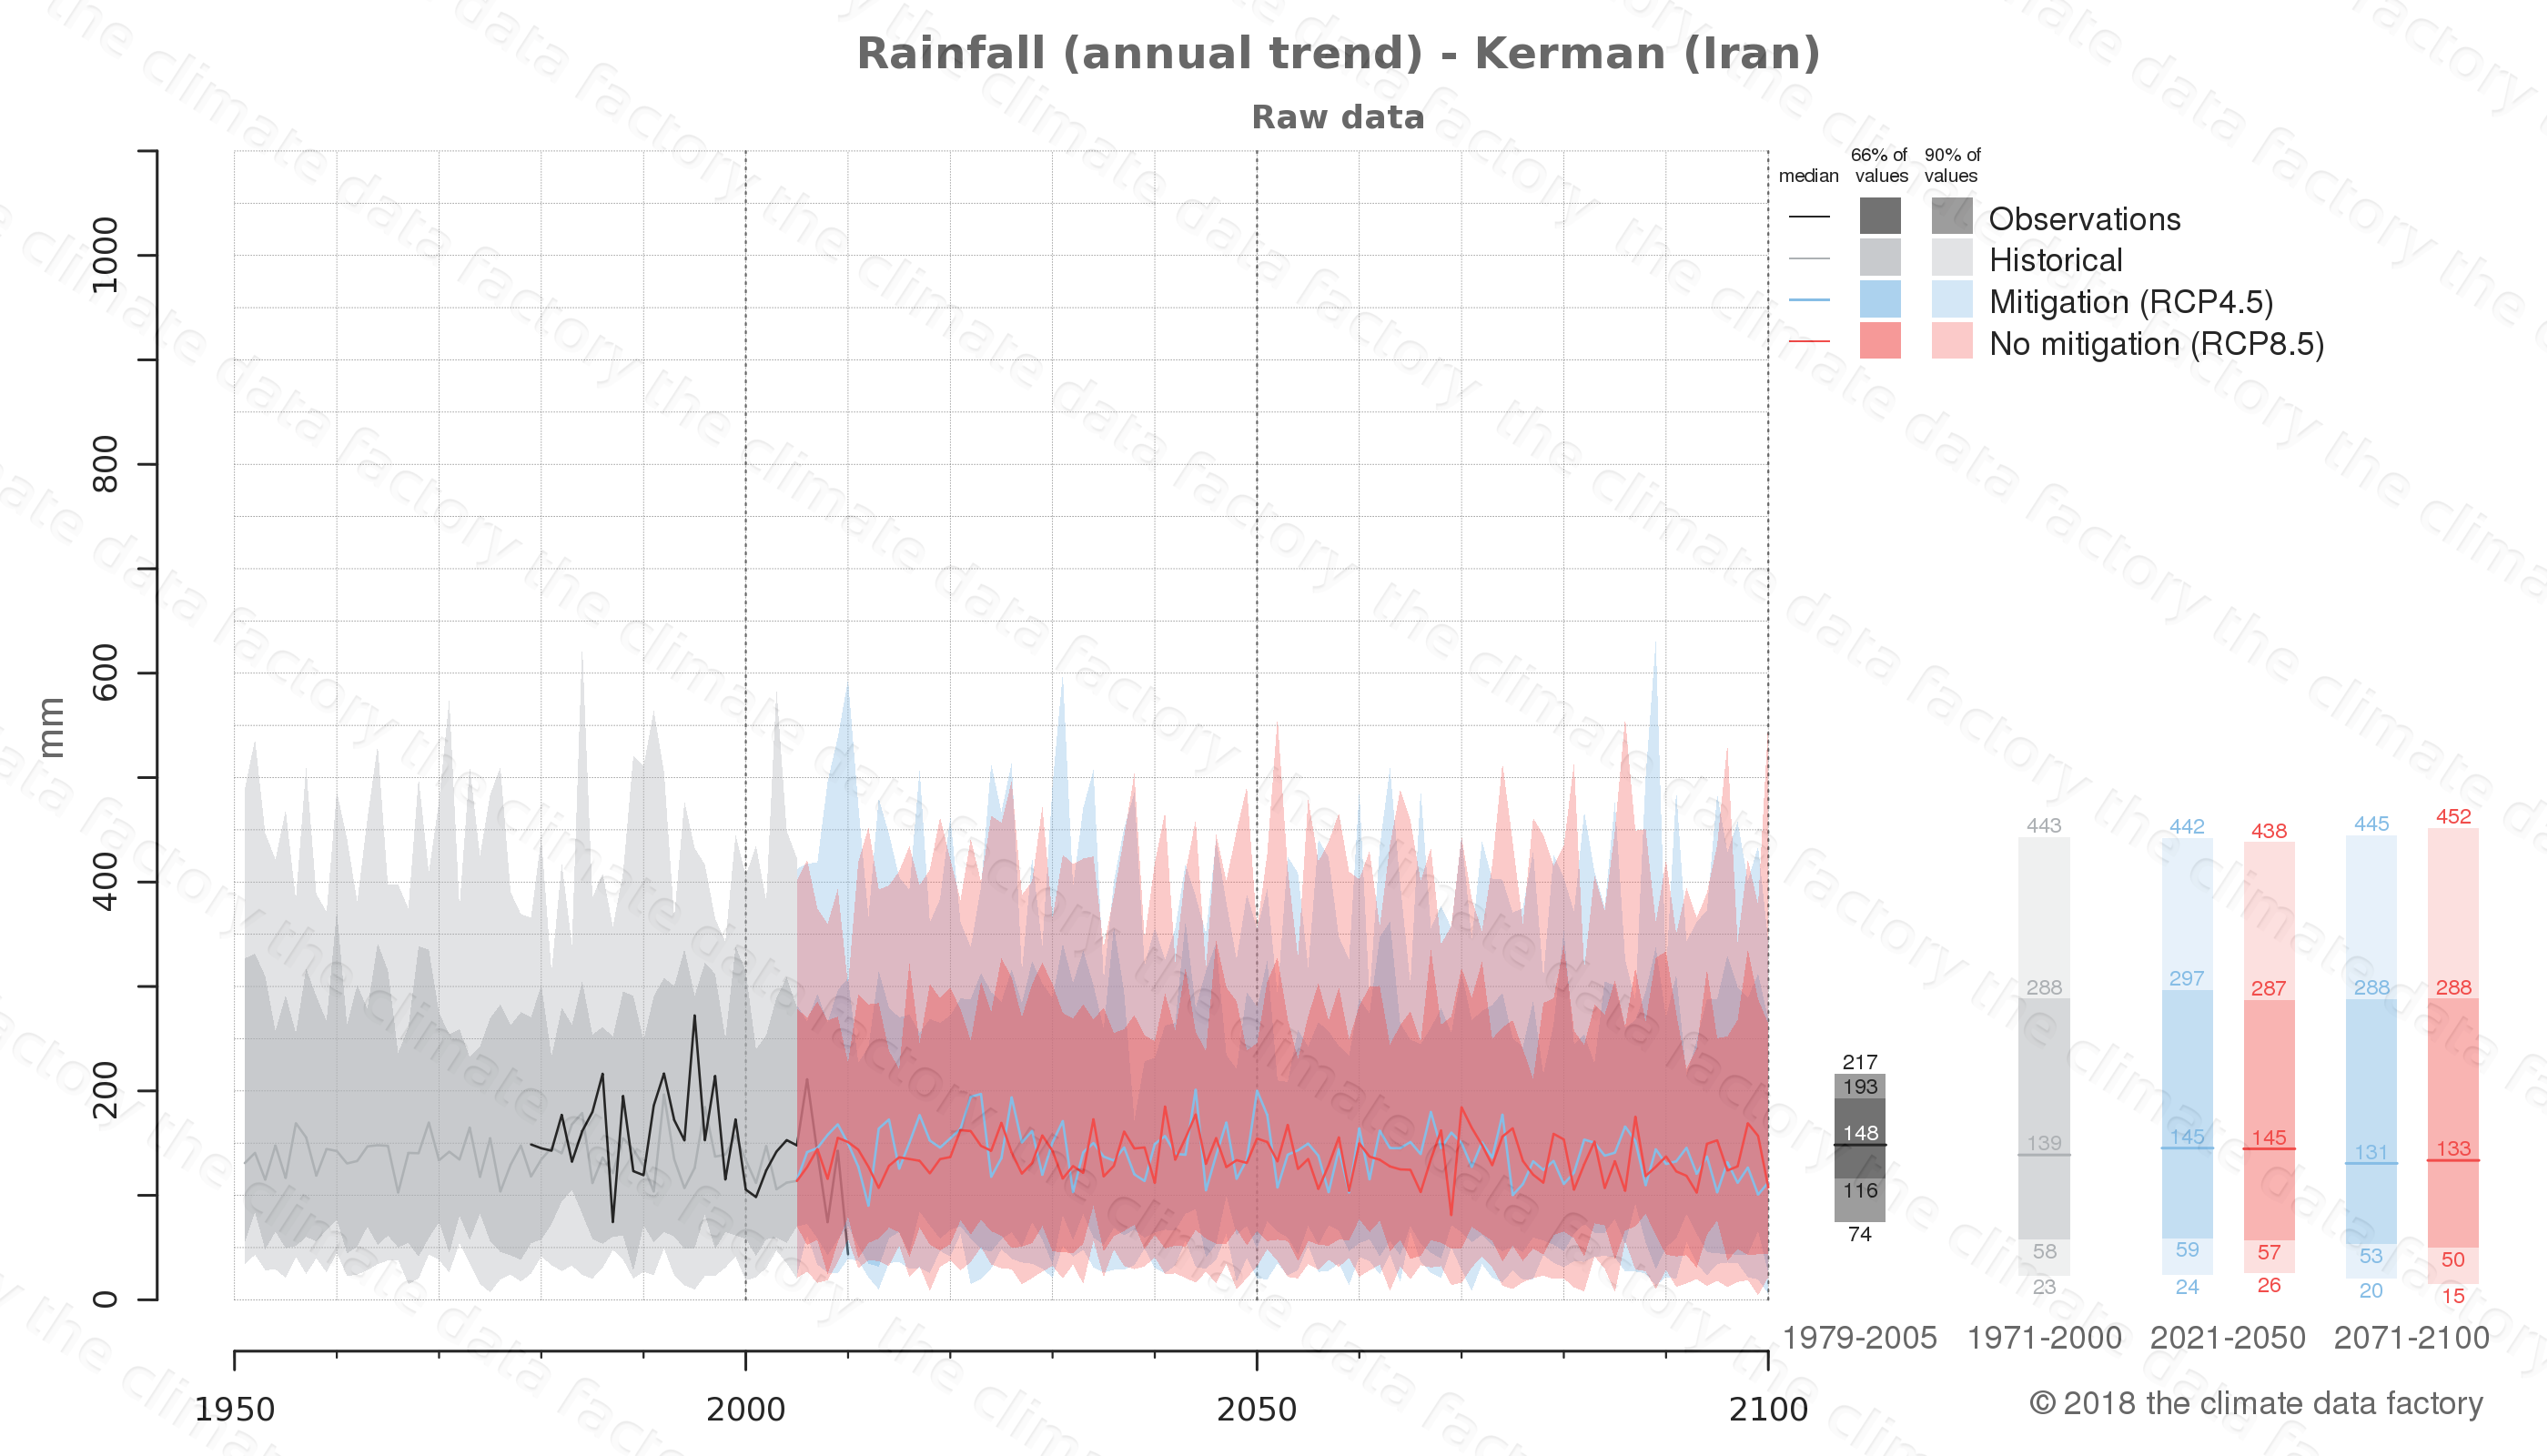 climate change data policy adaptation climate graph city data rainfall kerman iran